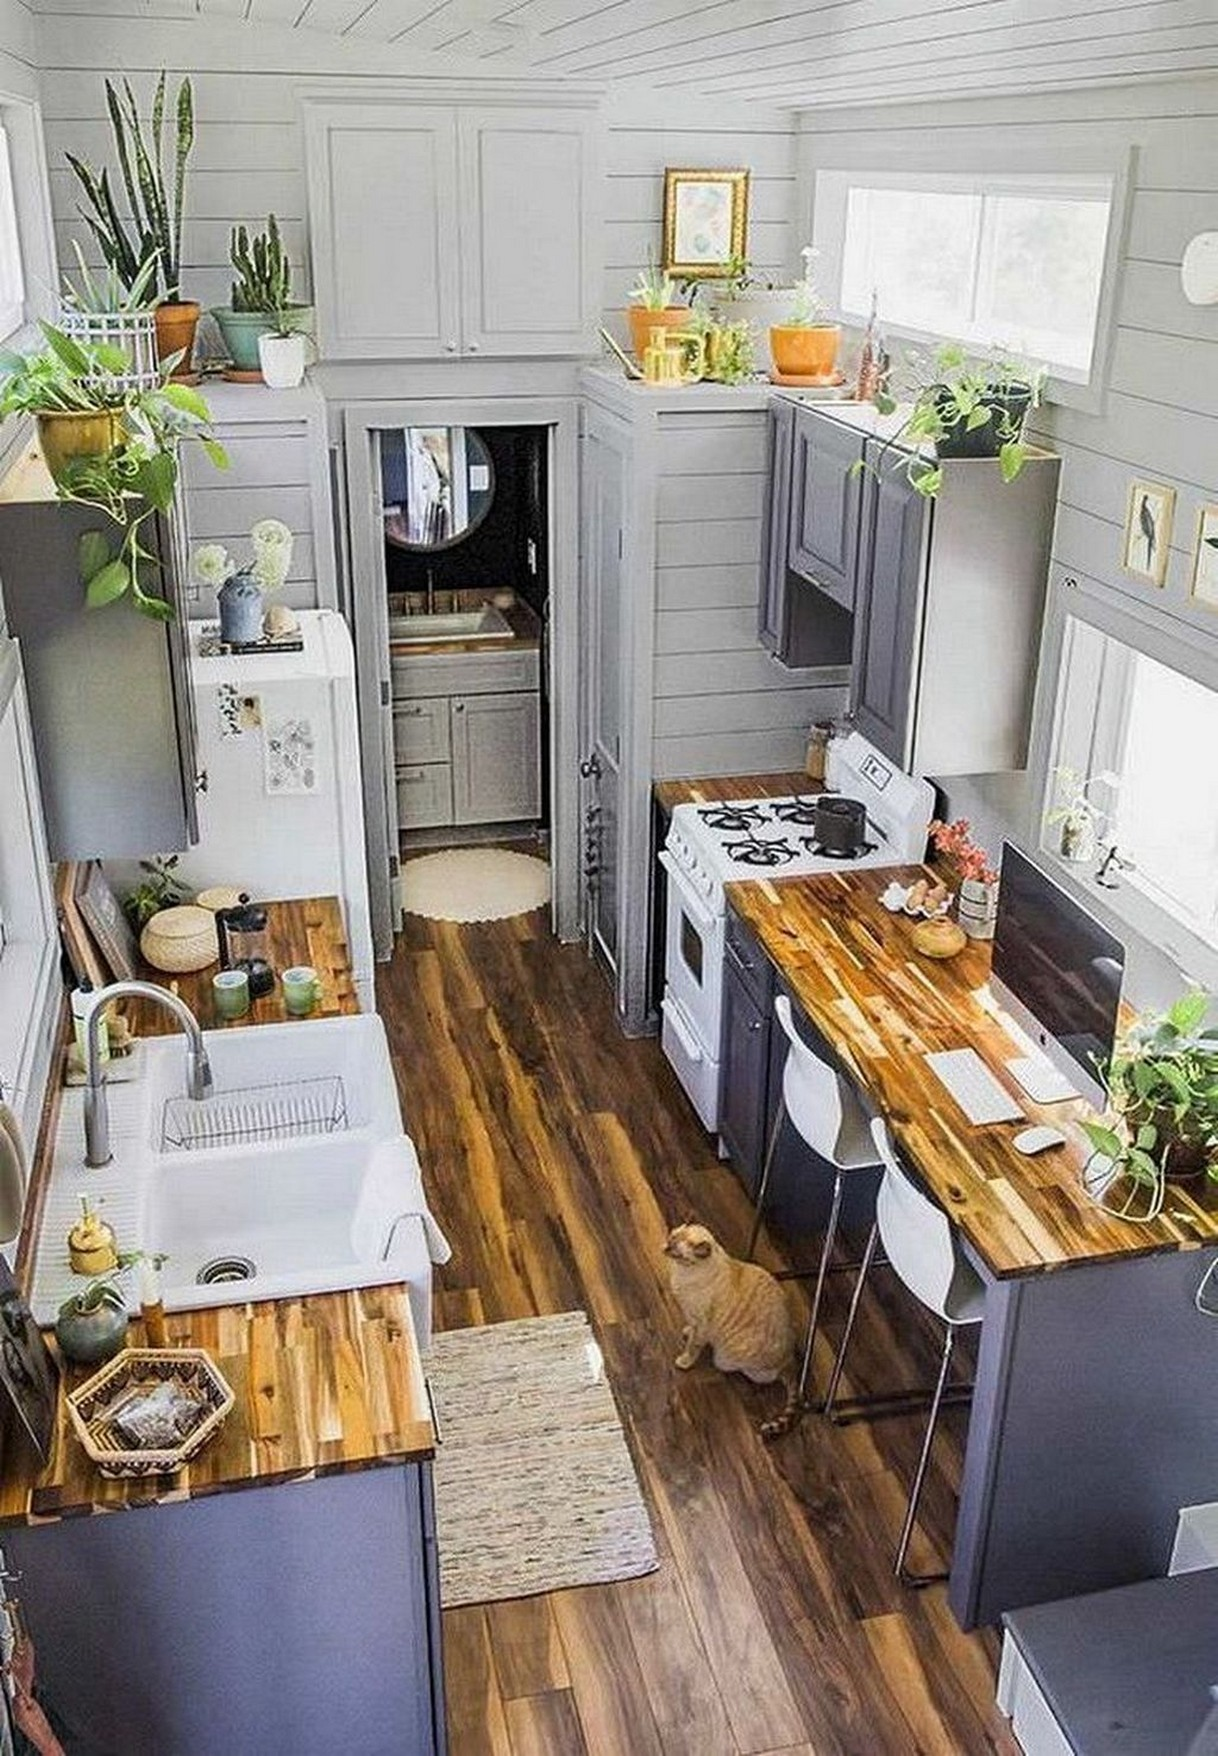 86 Some Small Kitchen Ideas To Help You Do Up Your Kitchen 79